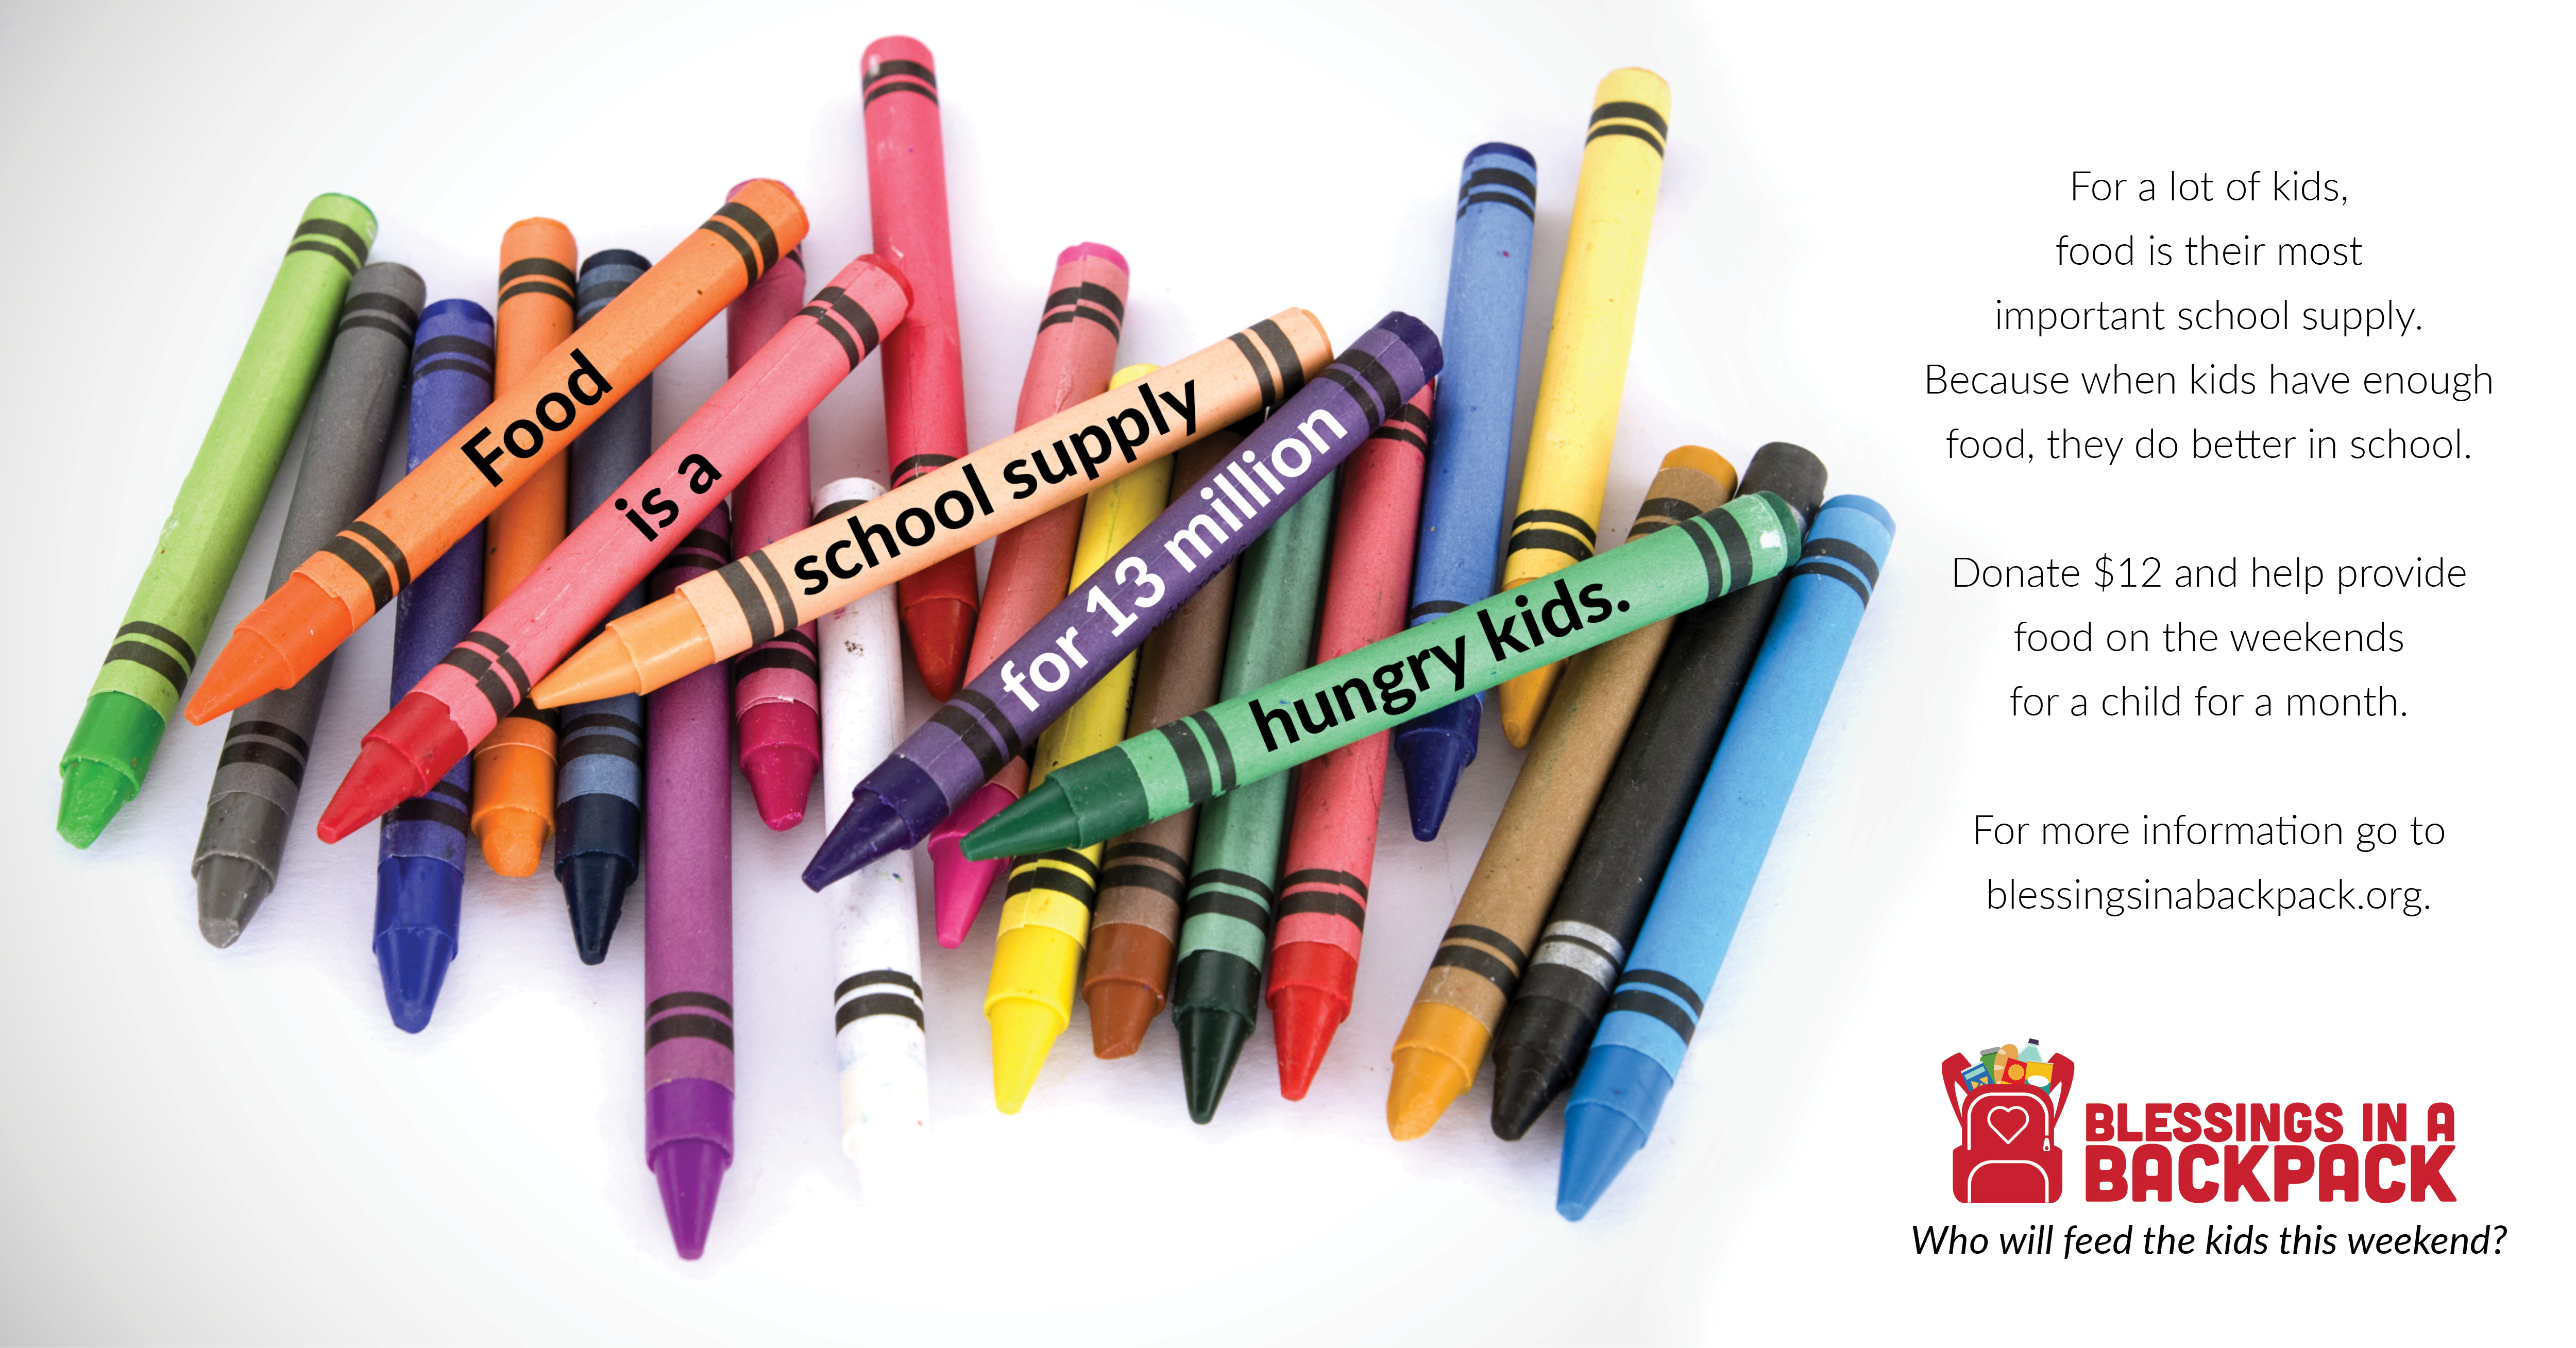 Food is a school supply for 13 million hungry kids